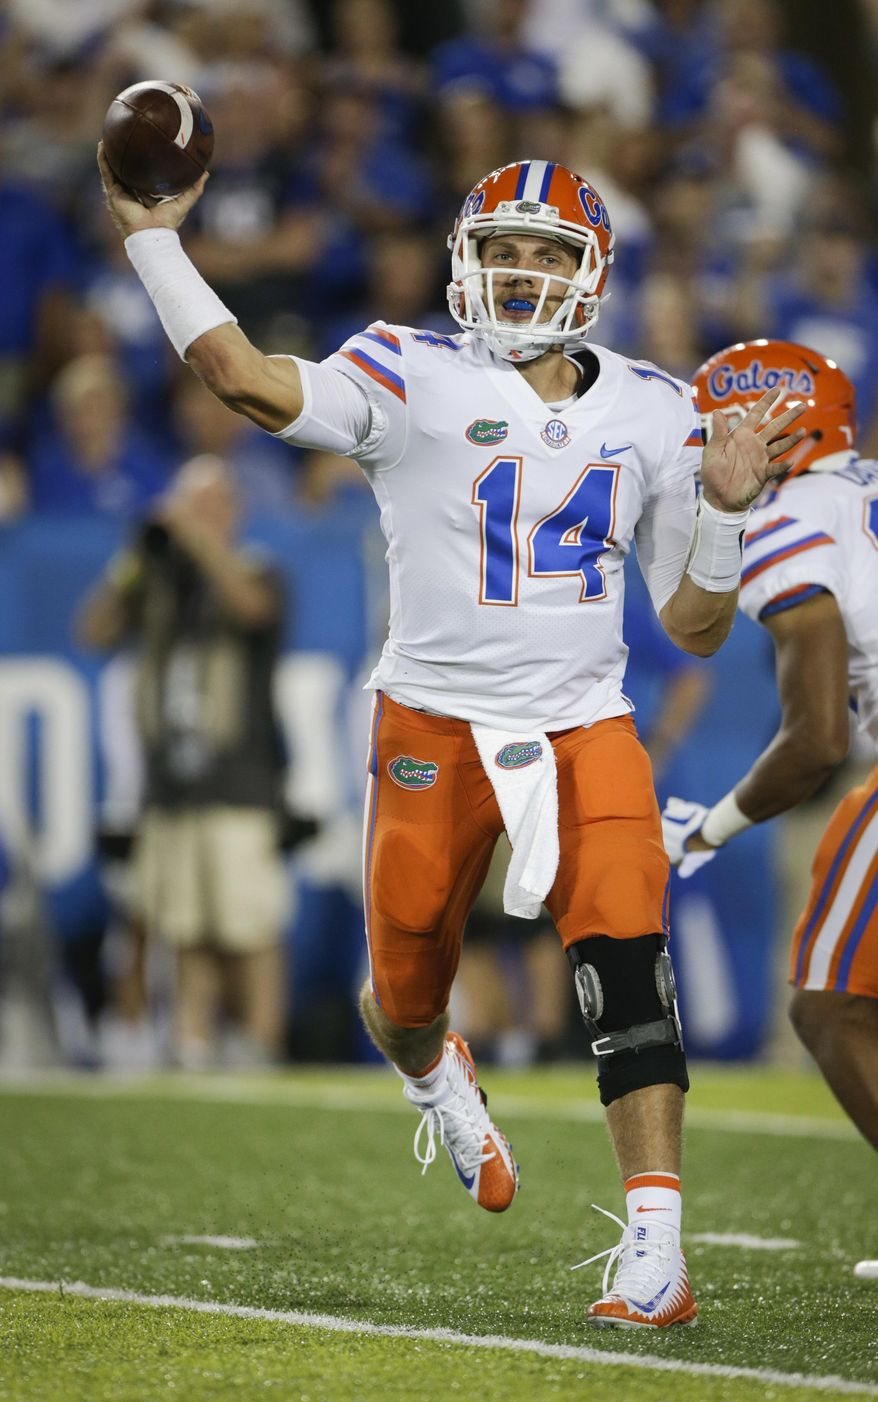 File-This Sept. 23, 2017, file photo shows Florida quarterback Luke Del Rio throwing a pass during the second half of an NCAA college football game against Kentucky in Lexington, Ky. No. 21 Florida is giving  Del Rio another chance to start, making the switch from Feleipe Franks after the redshirt freshman was benched in two of three games this season.Coach Jim McElwain made the announcement Monday, Sept. 25, 2017, choosing to go with Del Rio when the Gators (2-1, 2-0 Southeastern Conference) host Vanderbilt (3-1, 0-1) on Saturday. (AP Photo/David Stephenson, File)